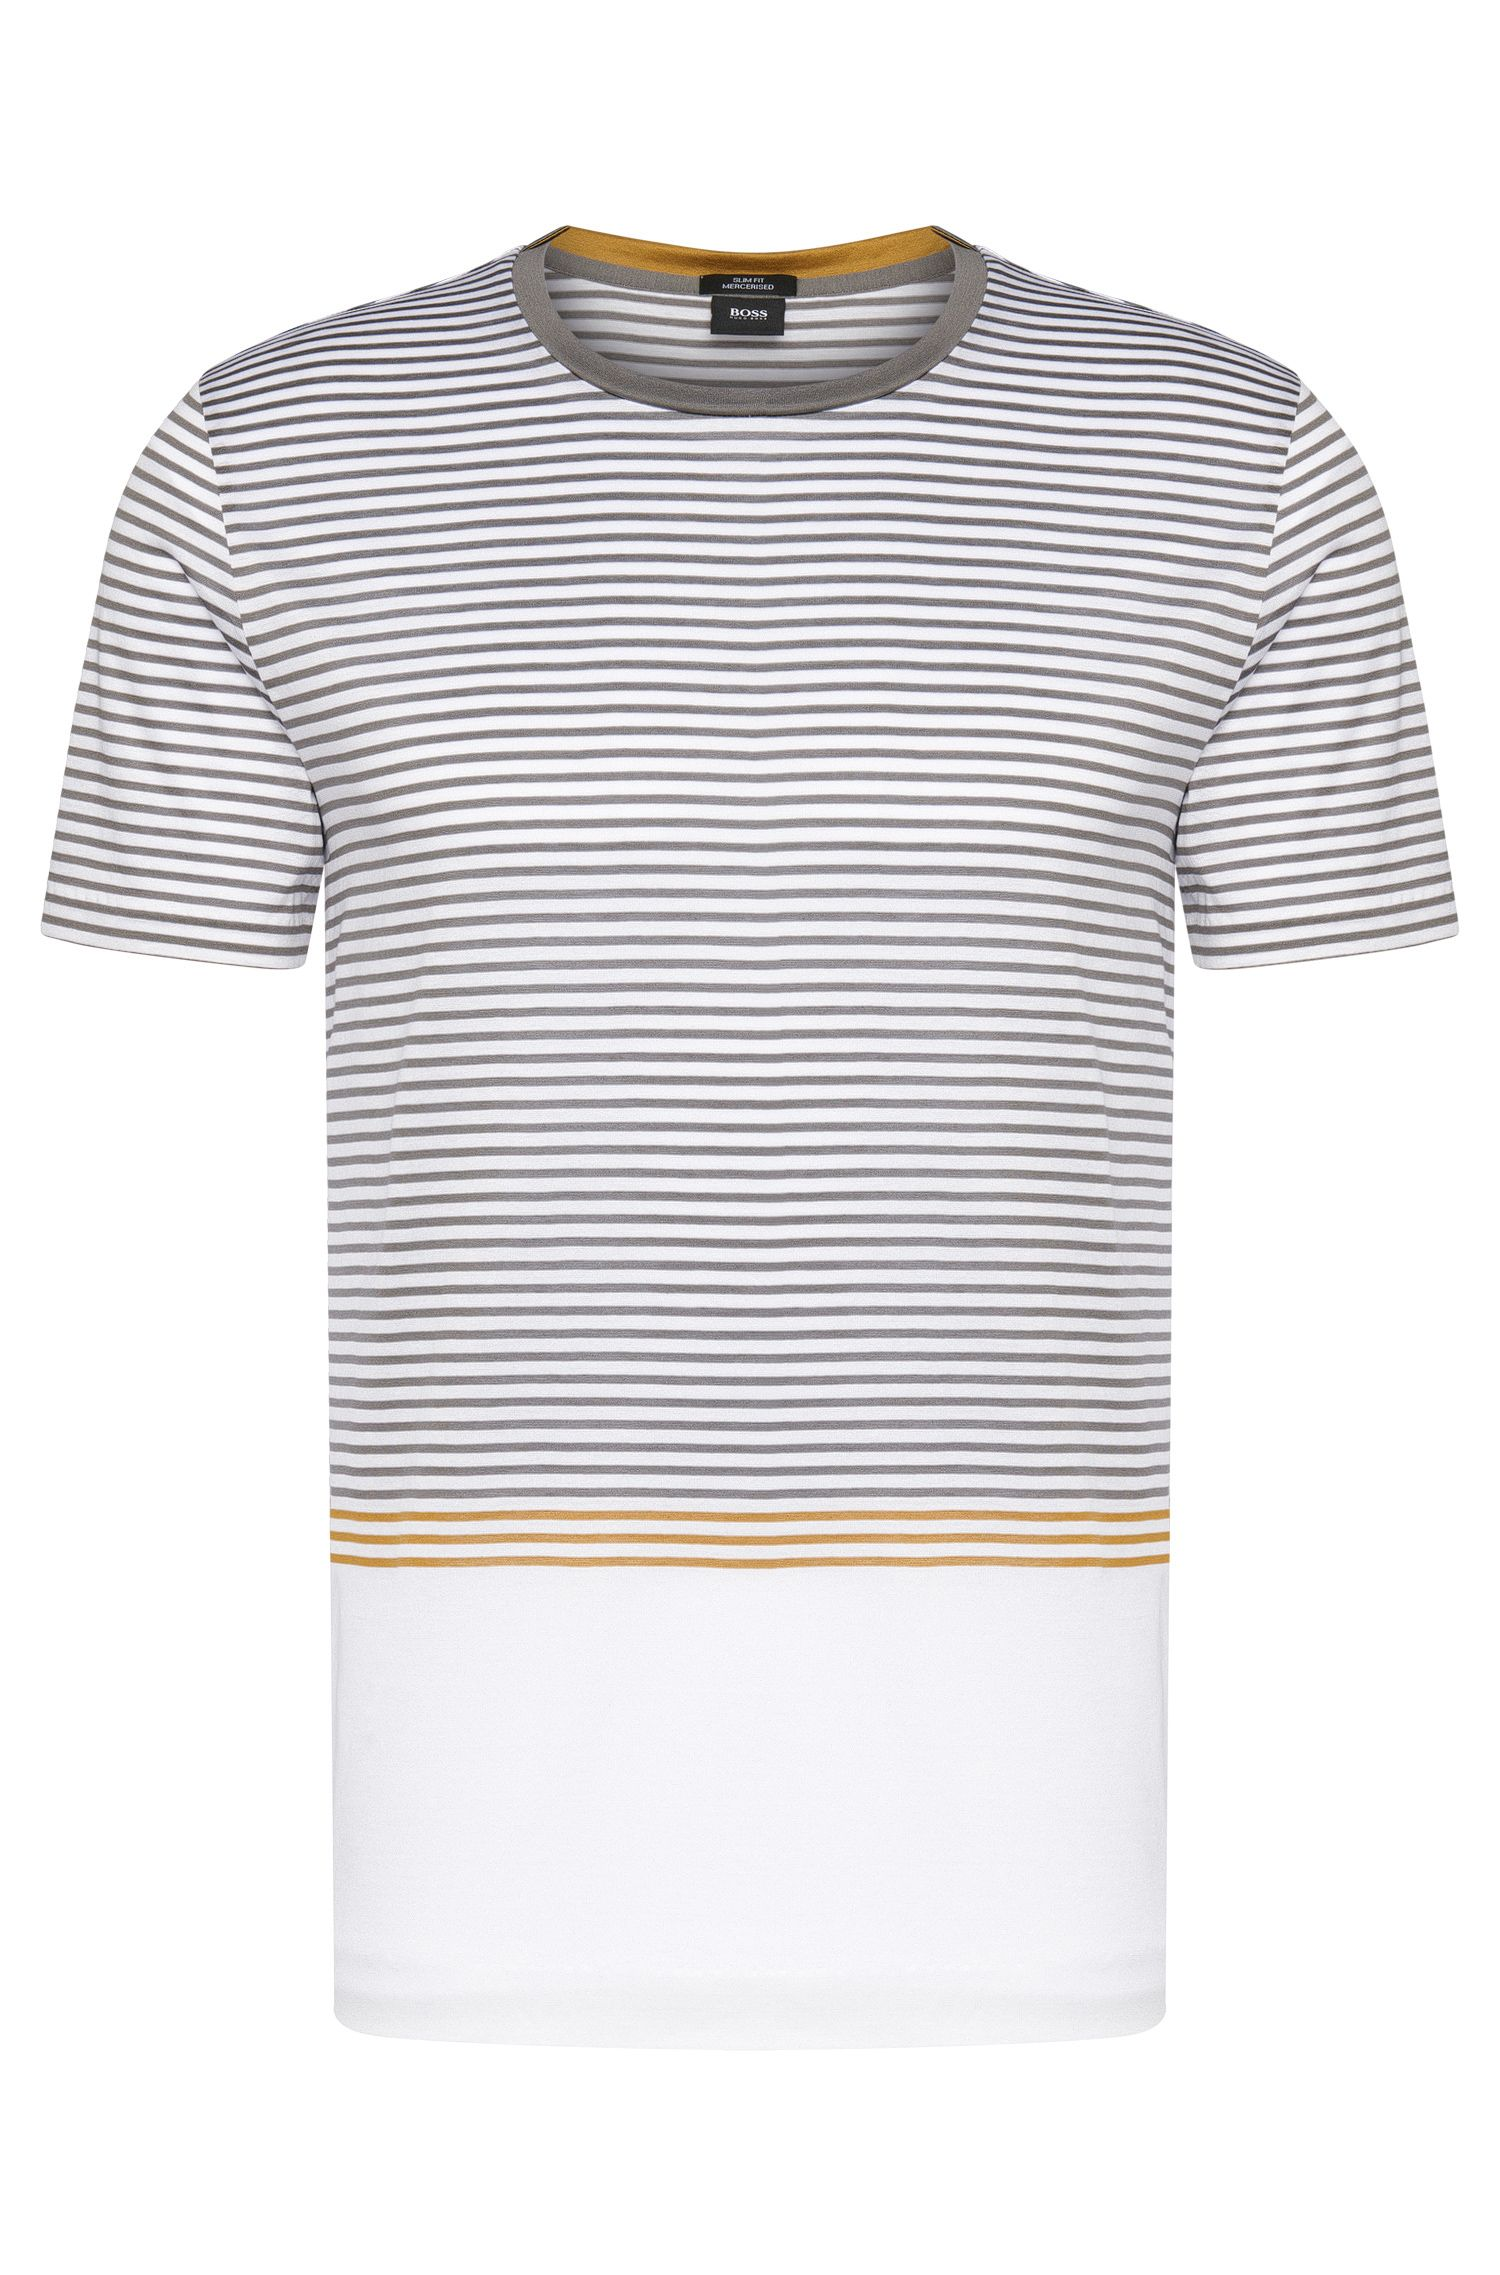 'Tessler' | Mercerized Cotton Striped T-Shirt